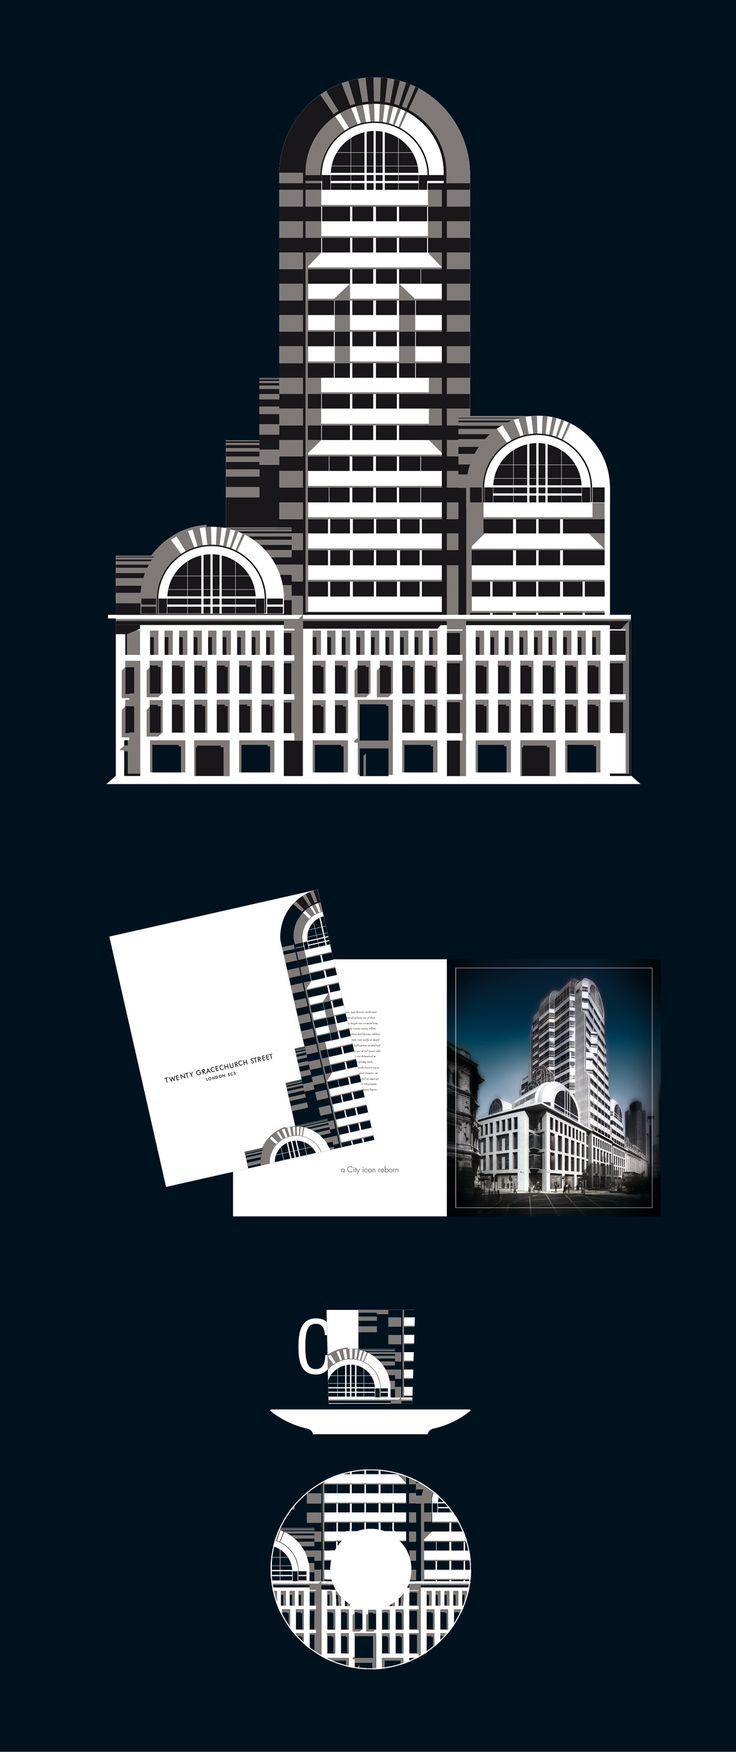 GRACE. SPACE. PLACE A City icon – formally 54 Lombard Street, the home of Barclays Bank – re-modelled, refurbished and re-addressed as Twenty Gracechurch Street. A Fornasetti homage echoed perfectly its quirky classicism.